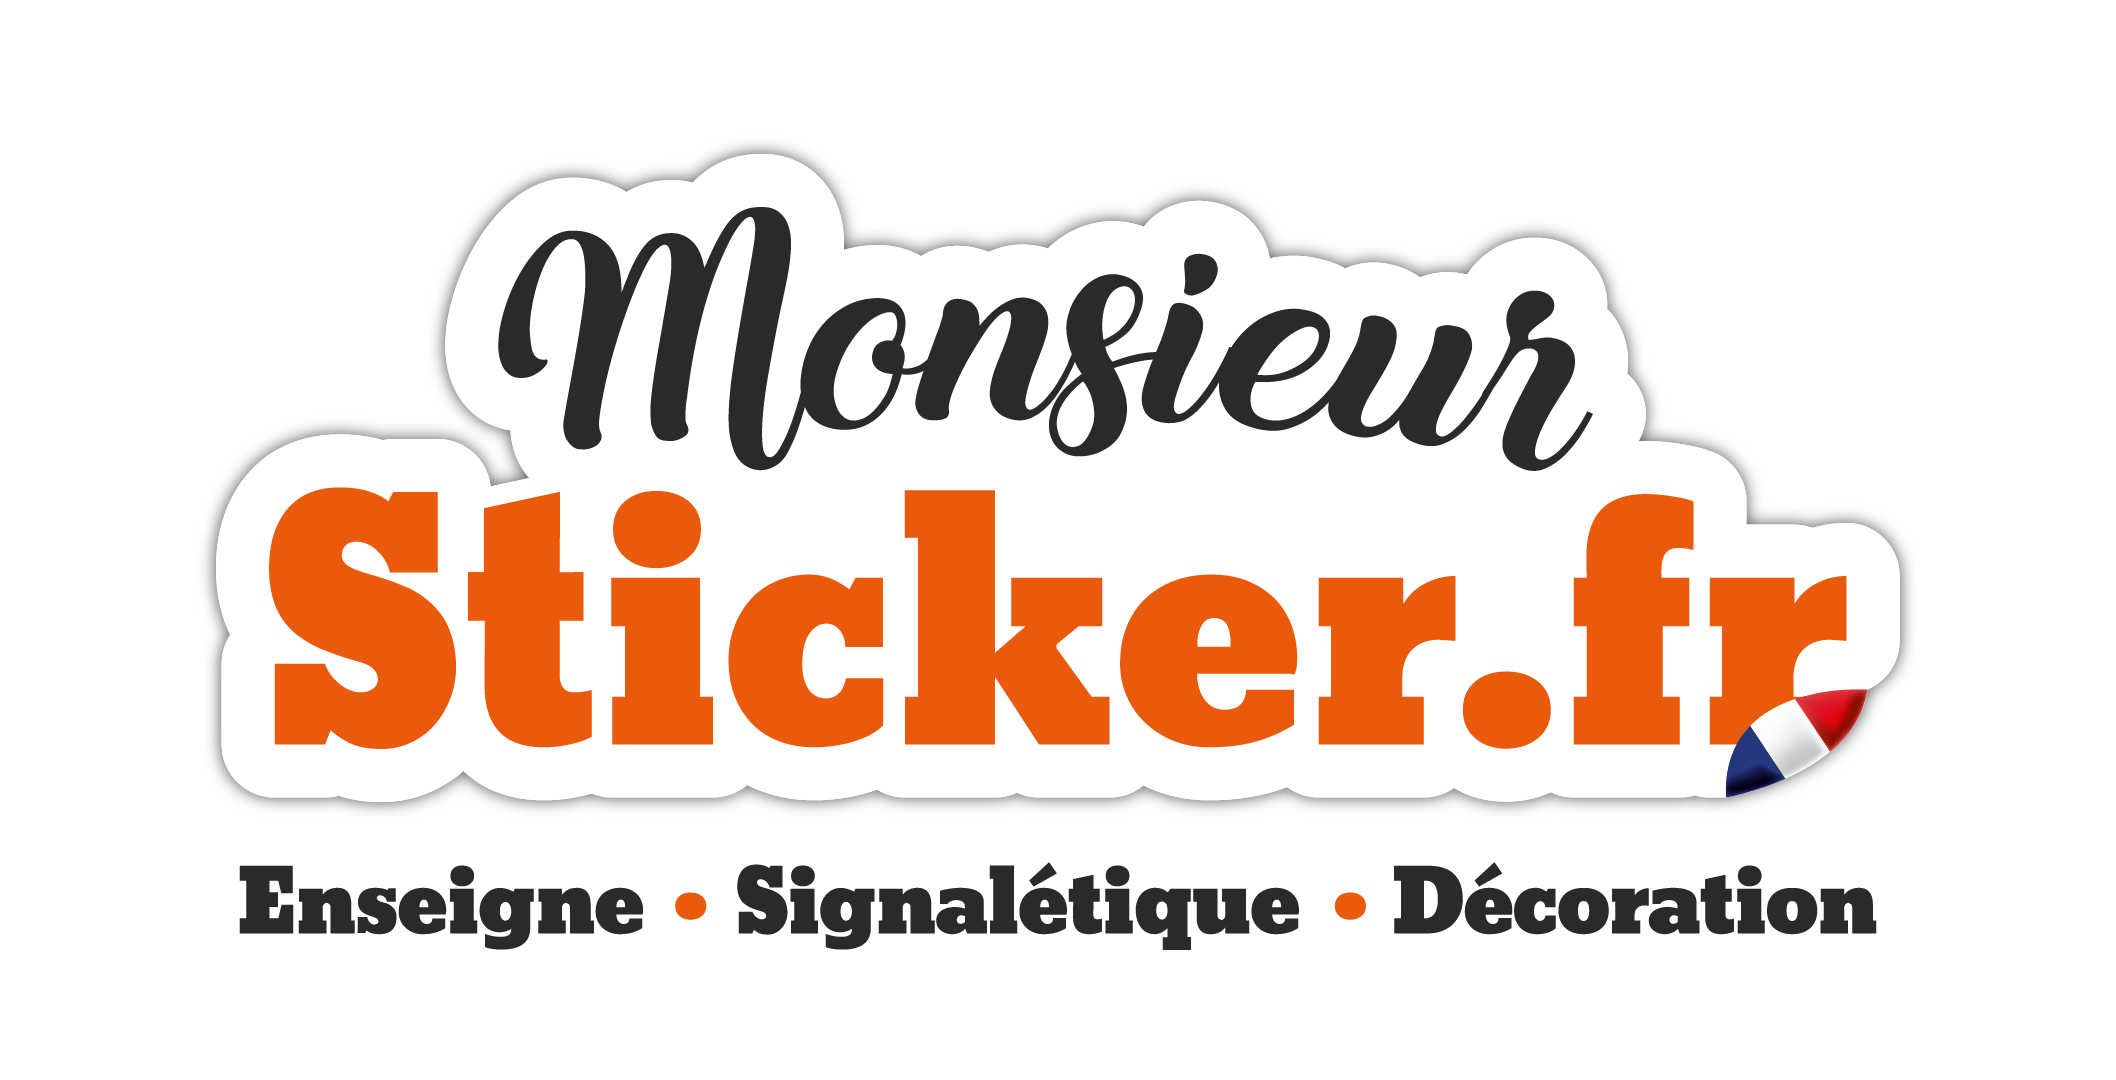 Monsieur Sticker